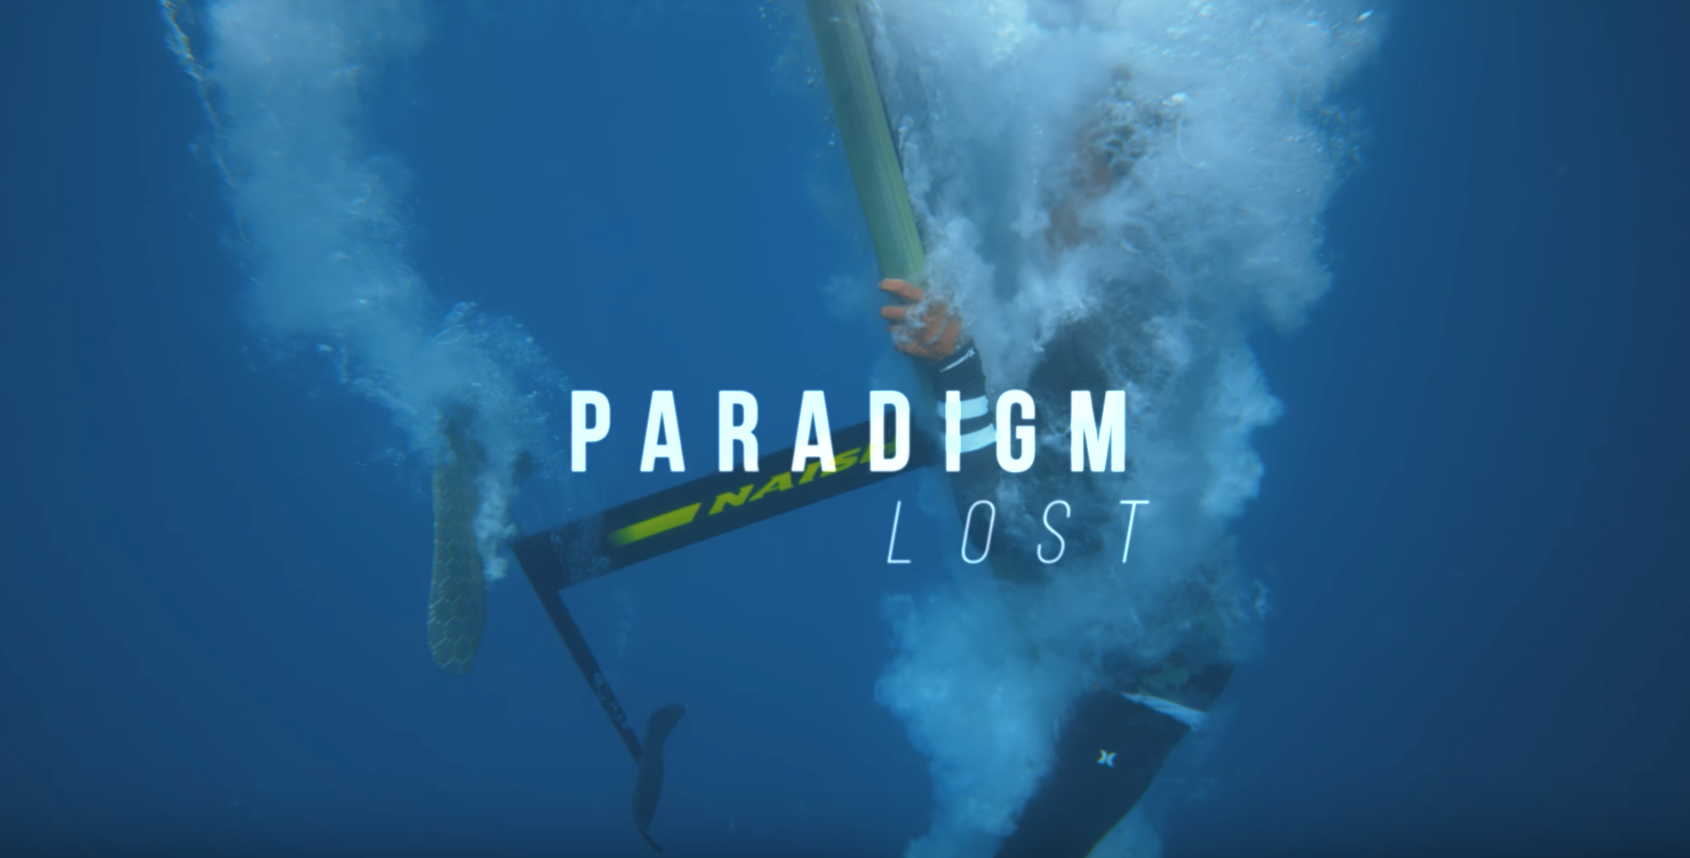 Paradigm Lost - A Surf Film by Kai Lenny | Official 4K Trailer